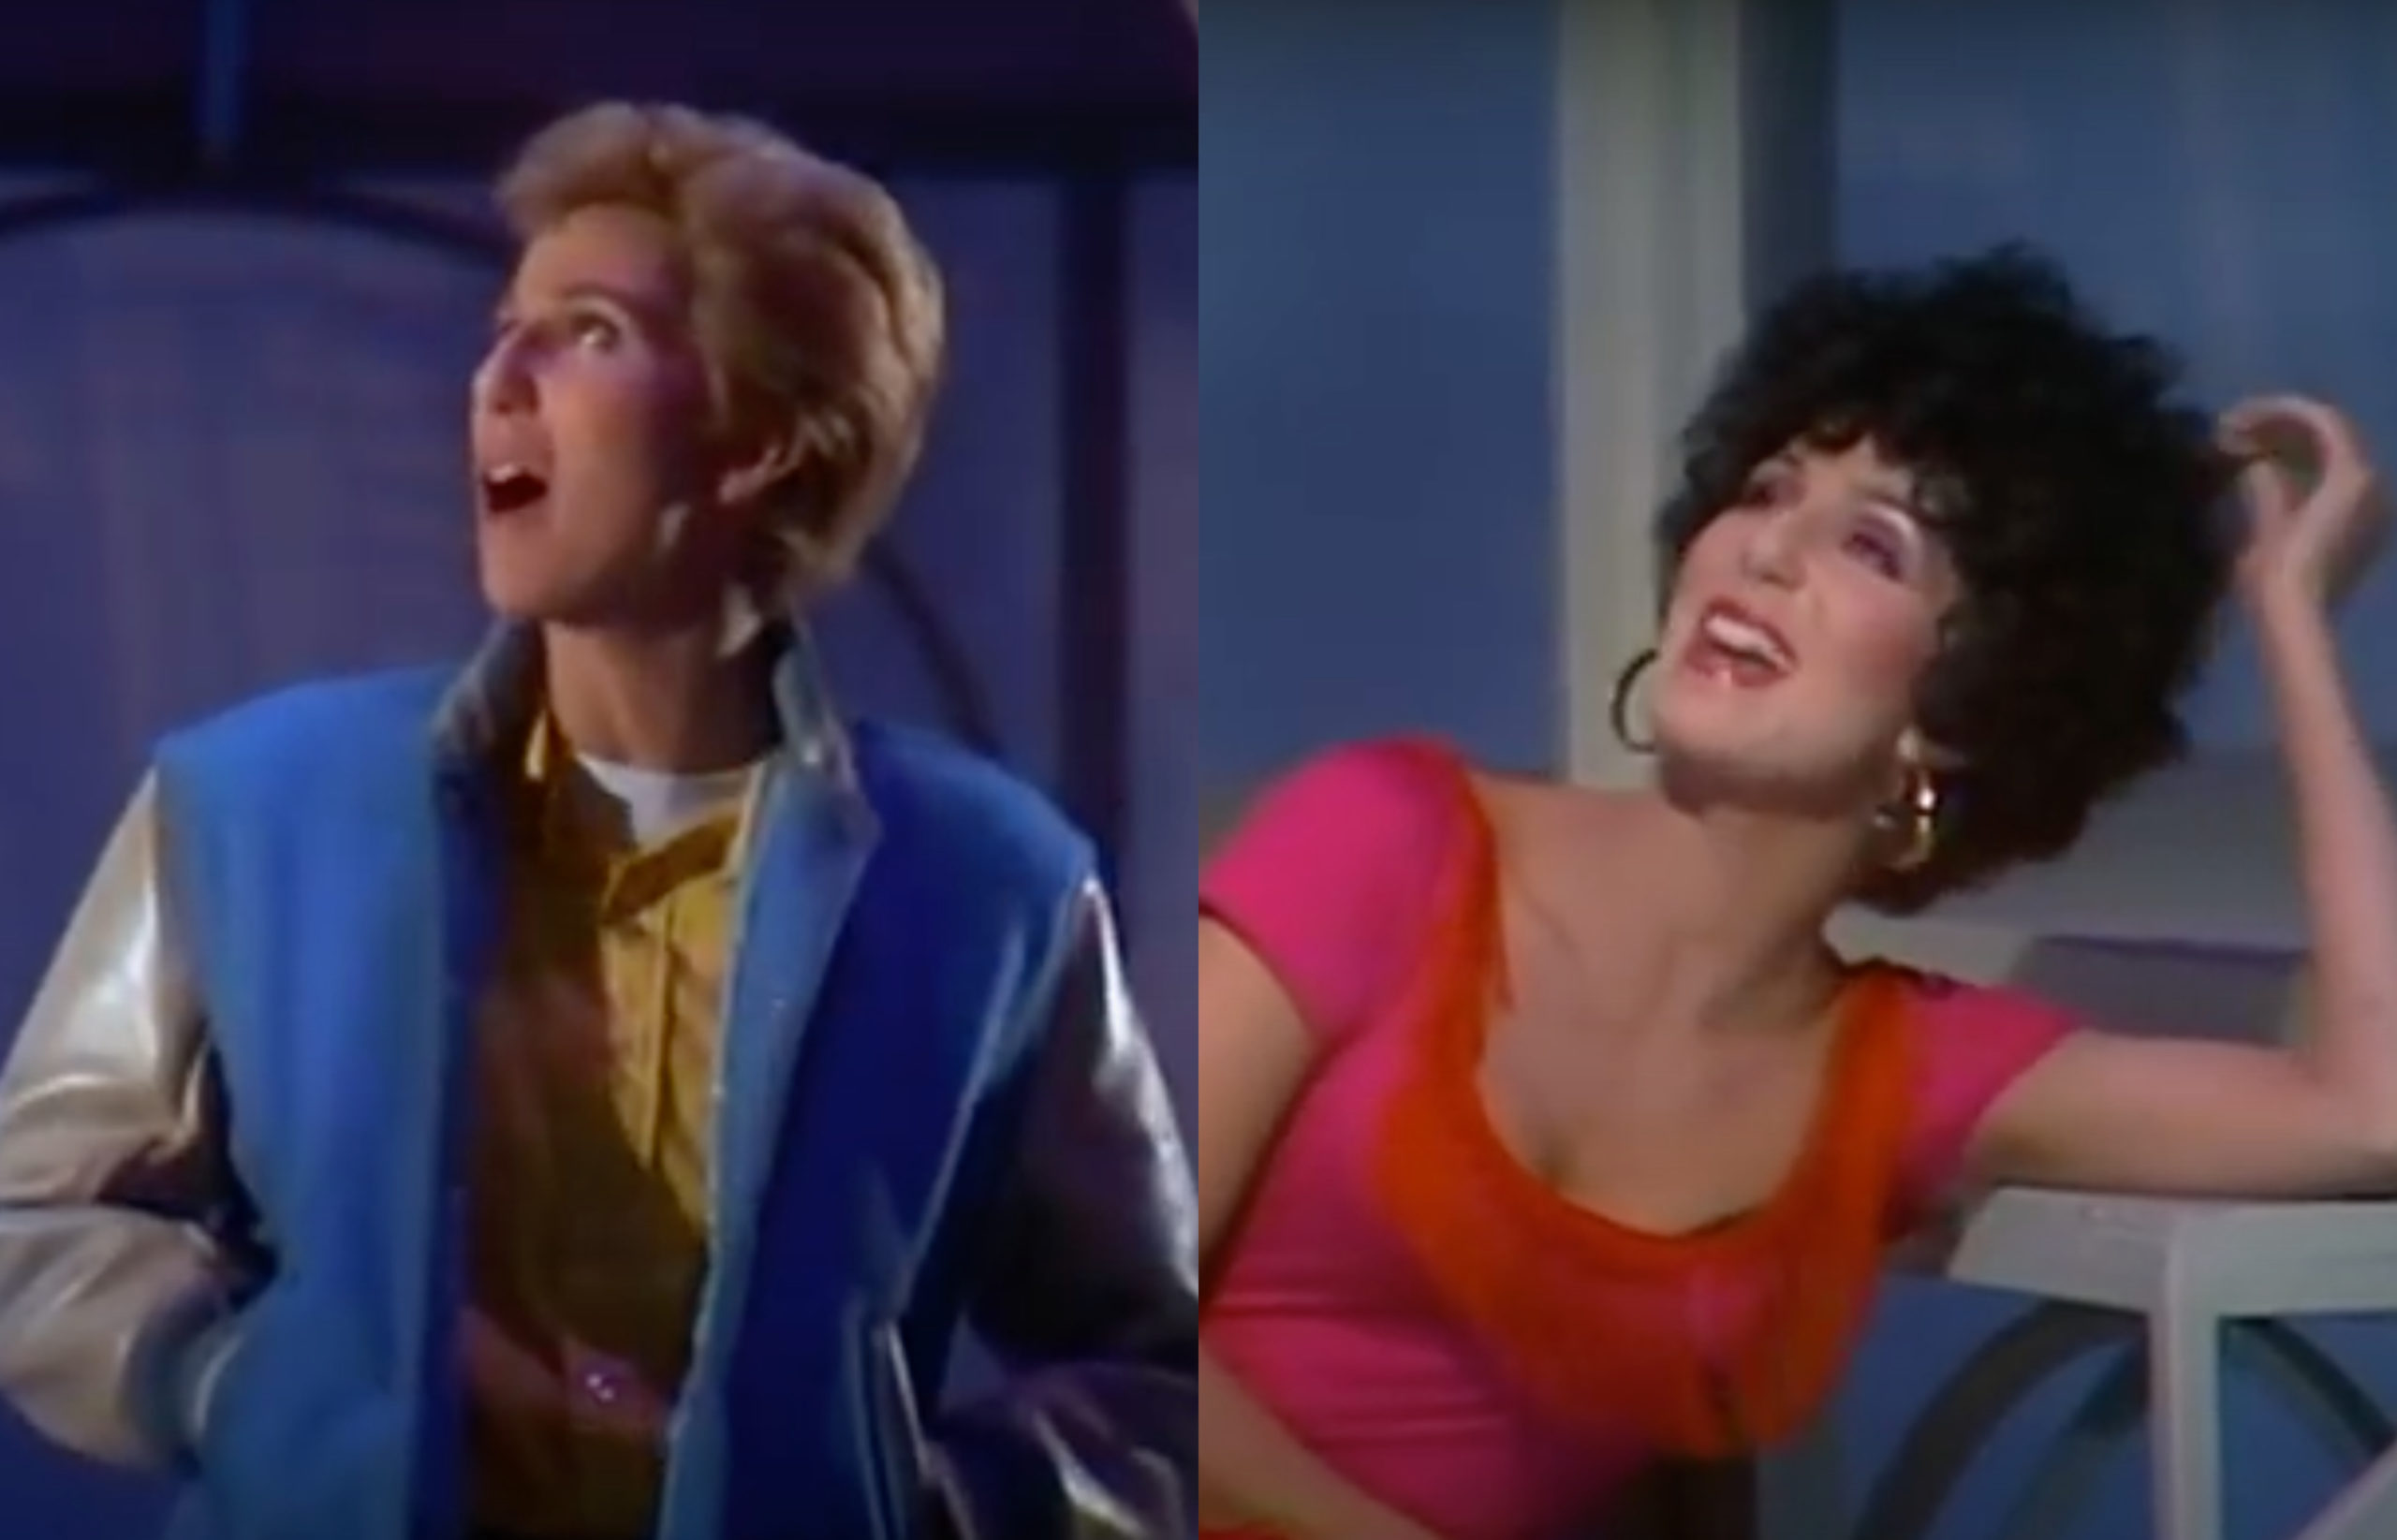 Cher (L) and Cher (R) performing a West Side Storey Medley on Cher... Special. (Screen capture via YouTube)